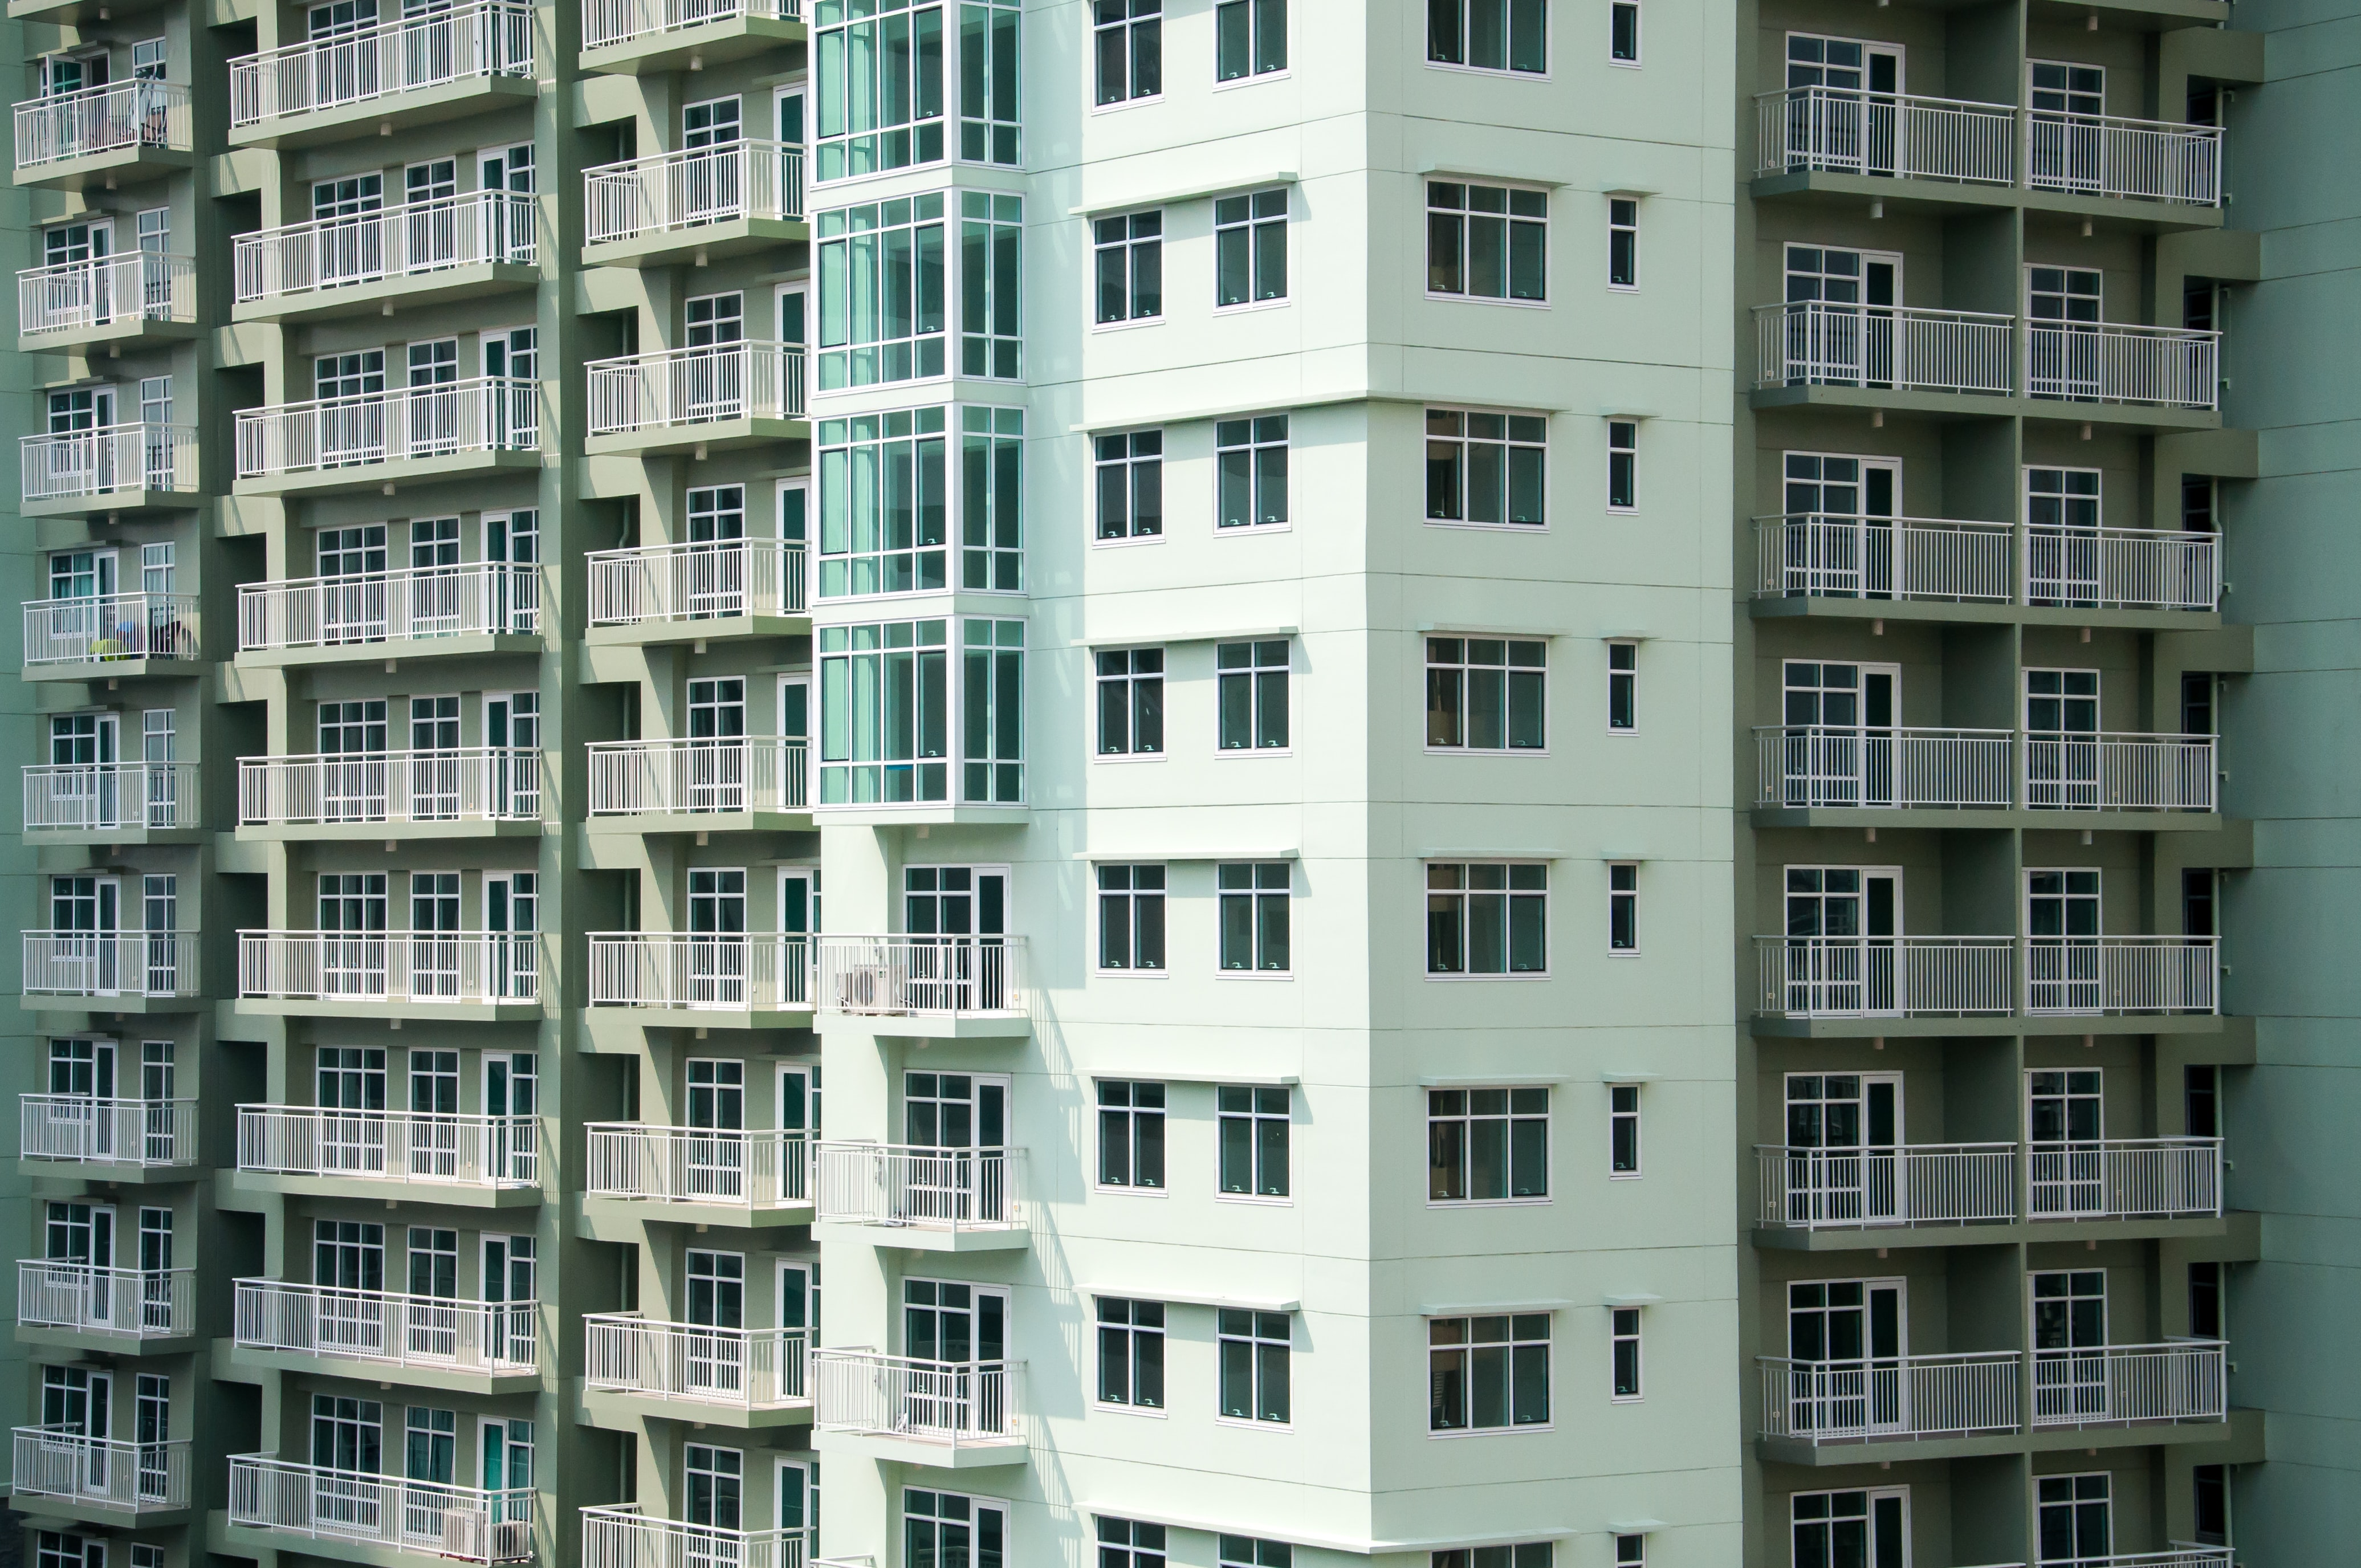 Multi-colored apartment building with white balconies and windows